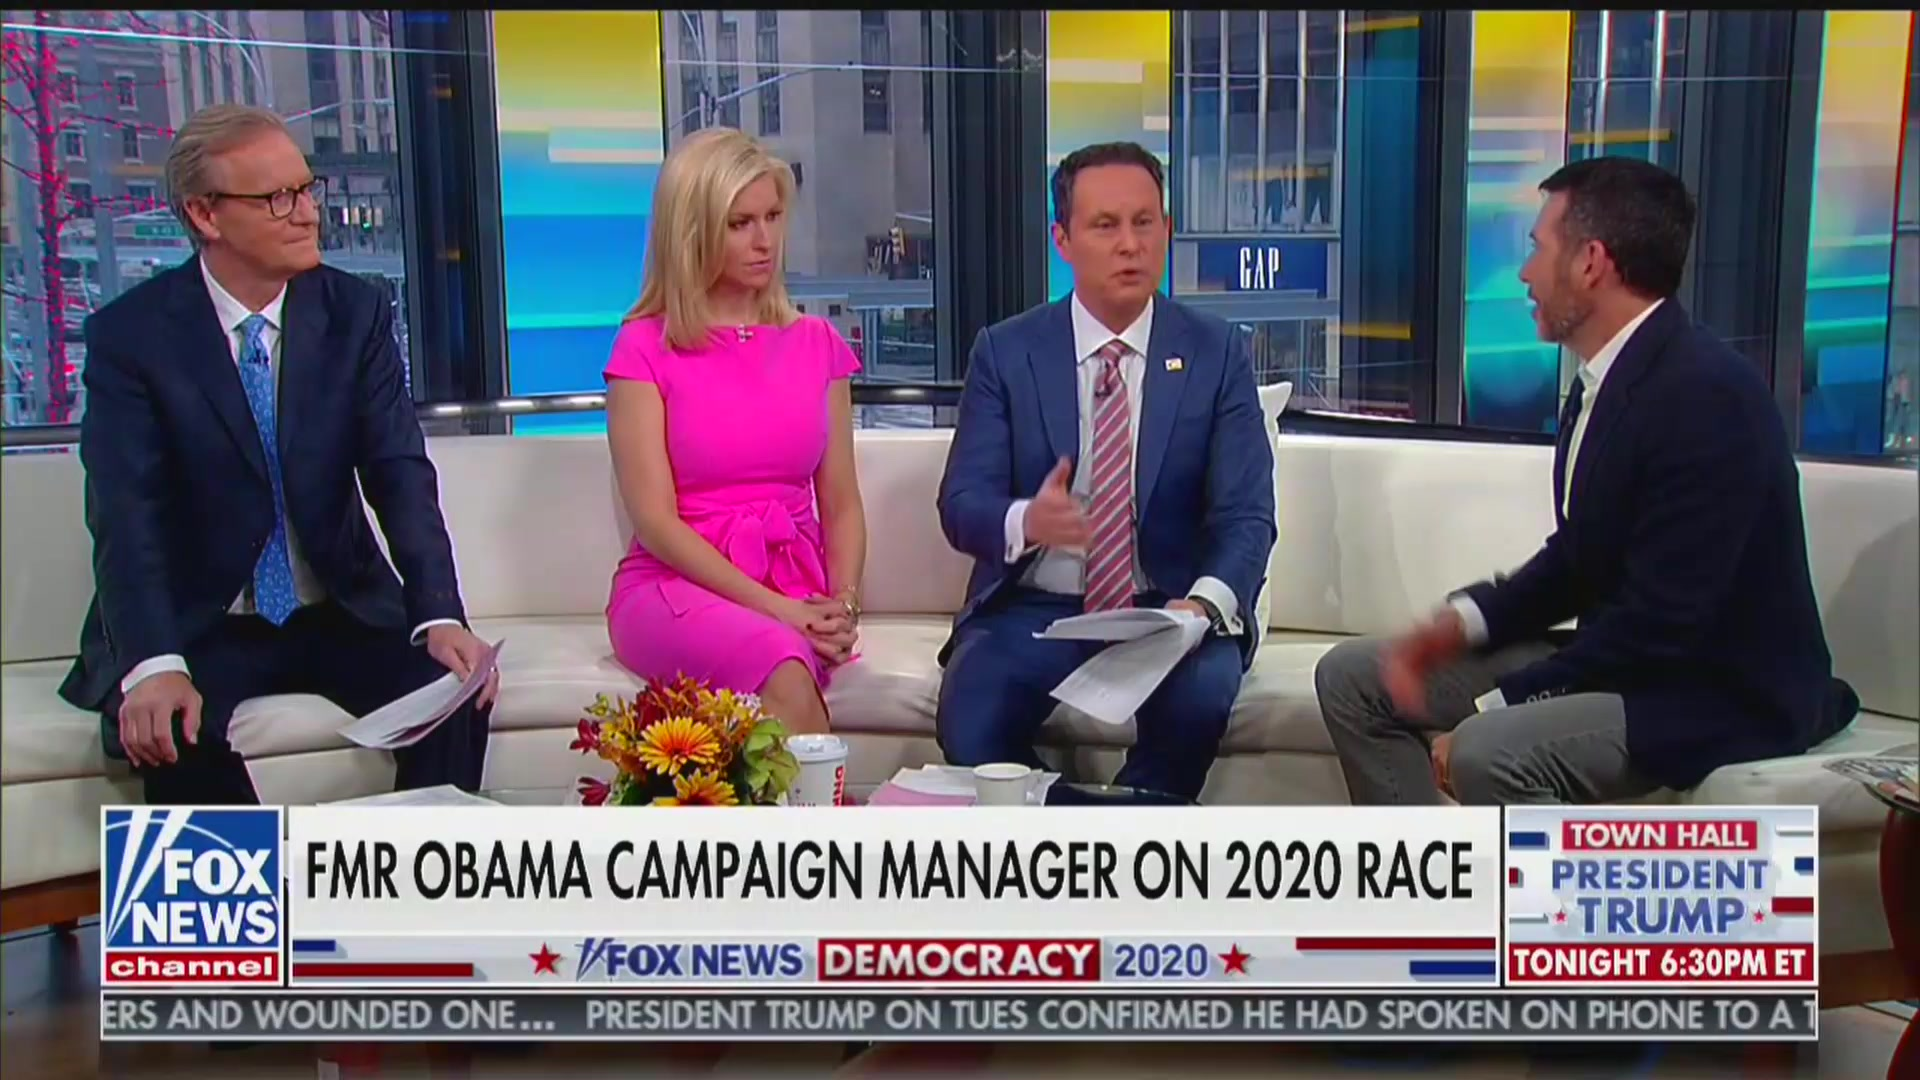 Brian Kilmeade Gets Defensive as Ex-Obama Campaign Manager Says Fox Is Trump's 'Happy Place'